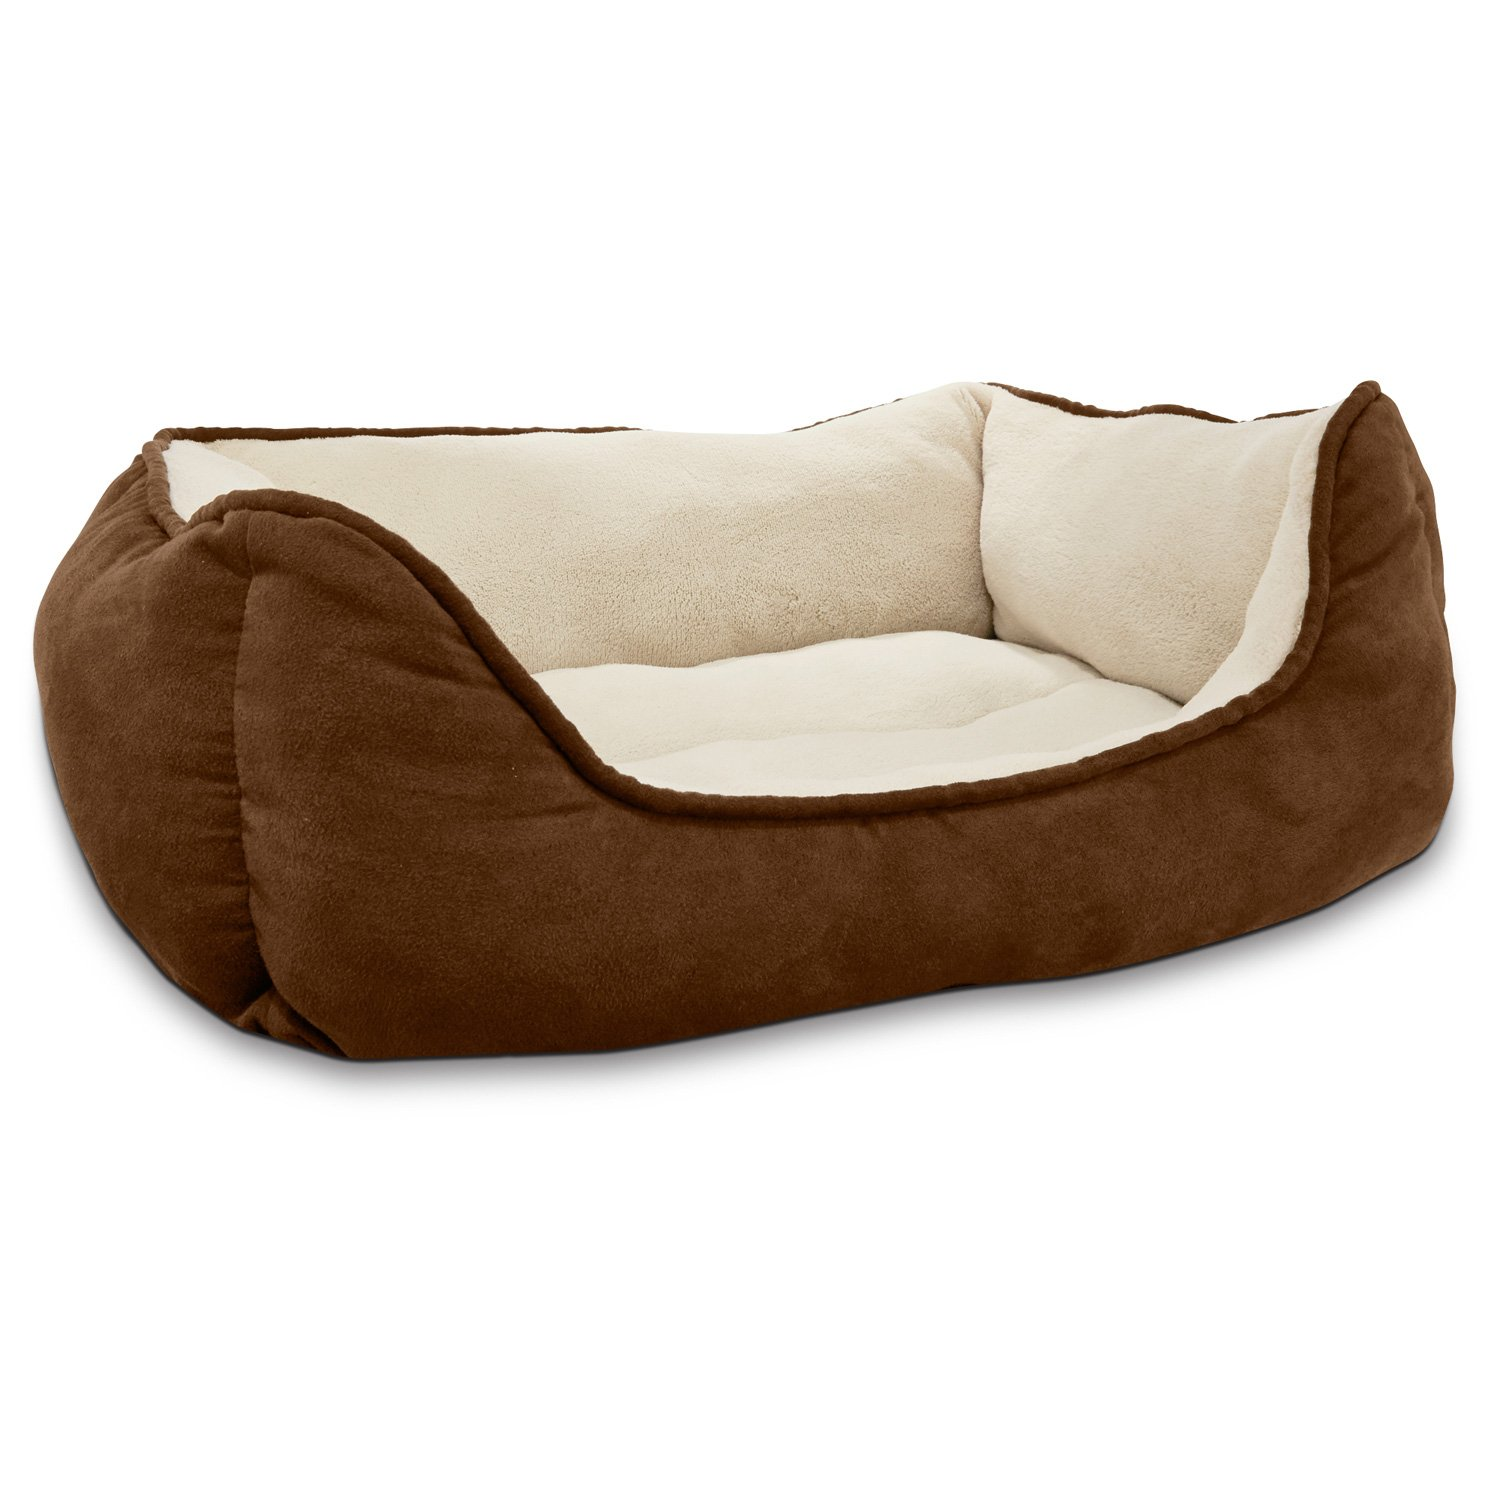 Petco Box Dog Bed in Brown